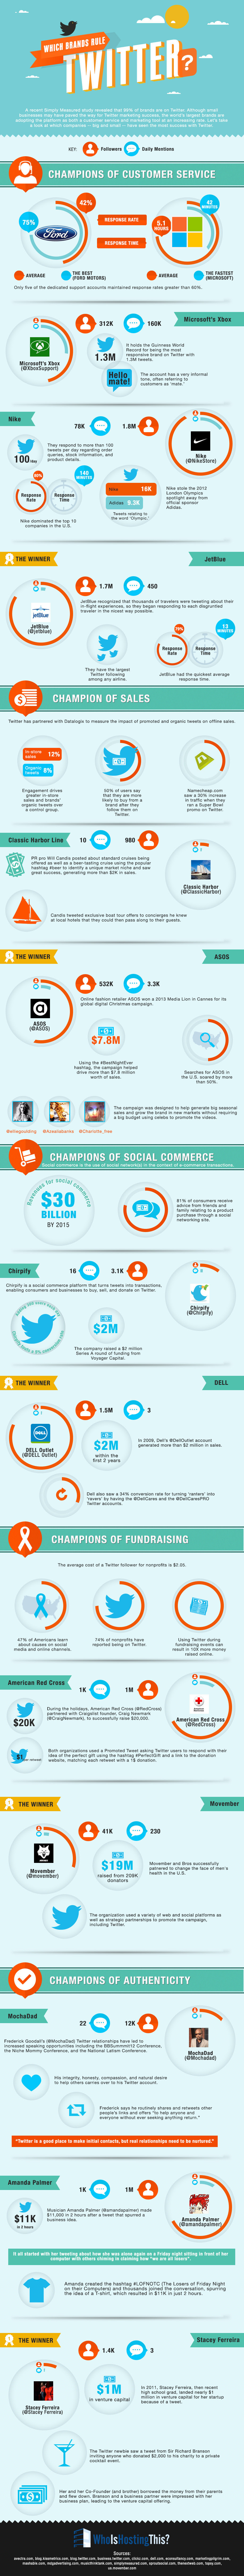 Which Brands Rule Twitter - infographic